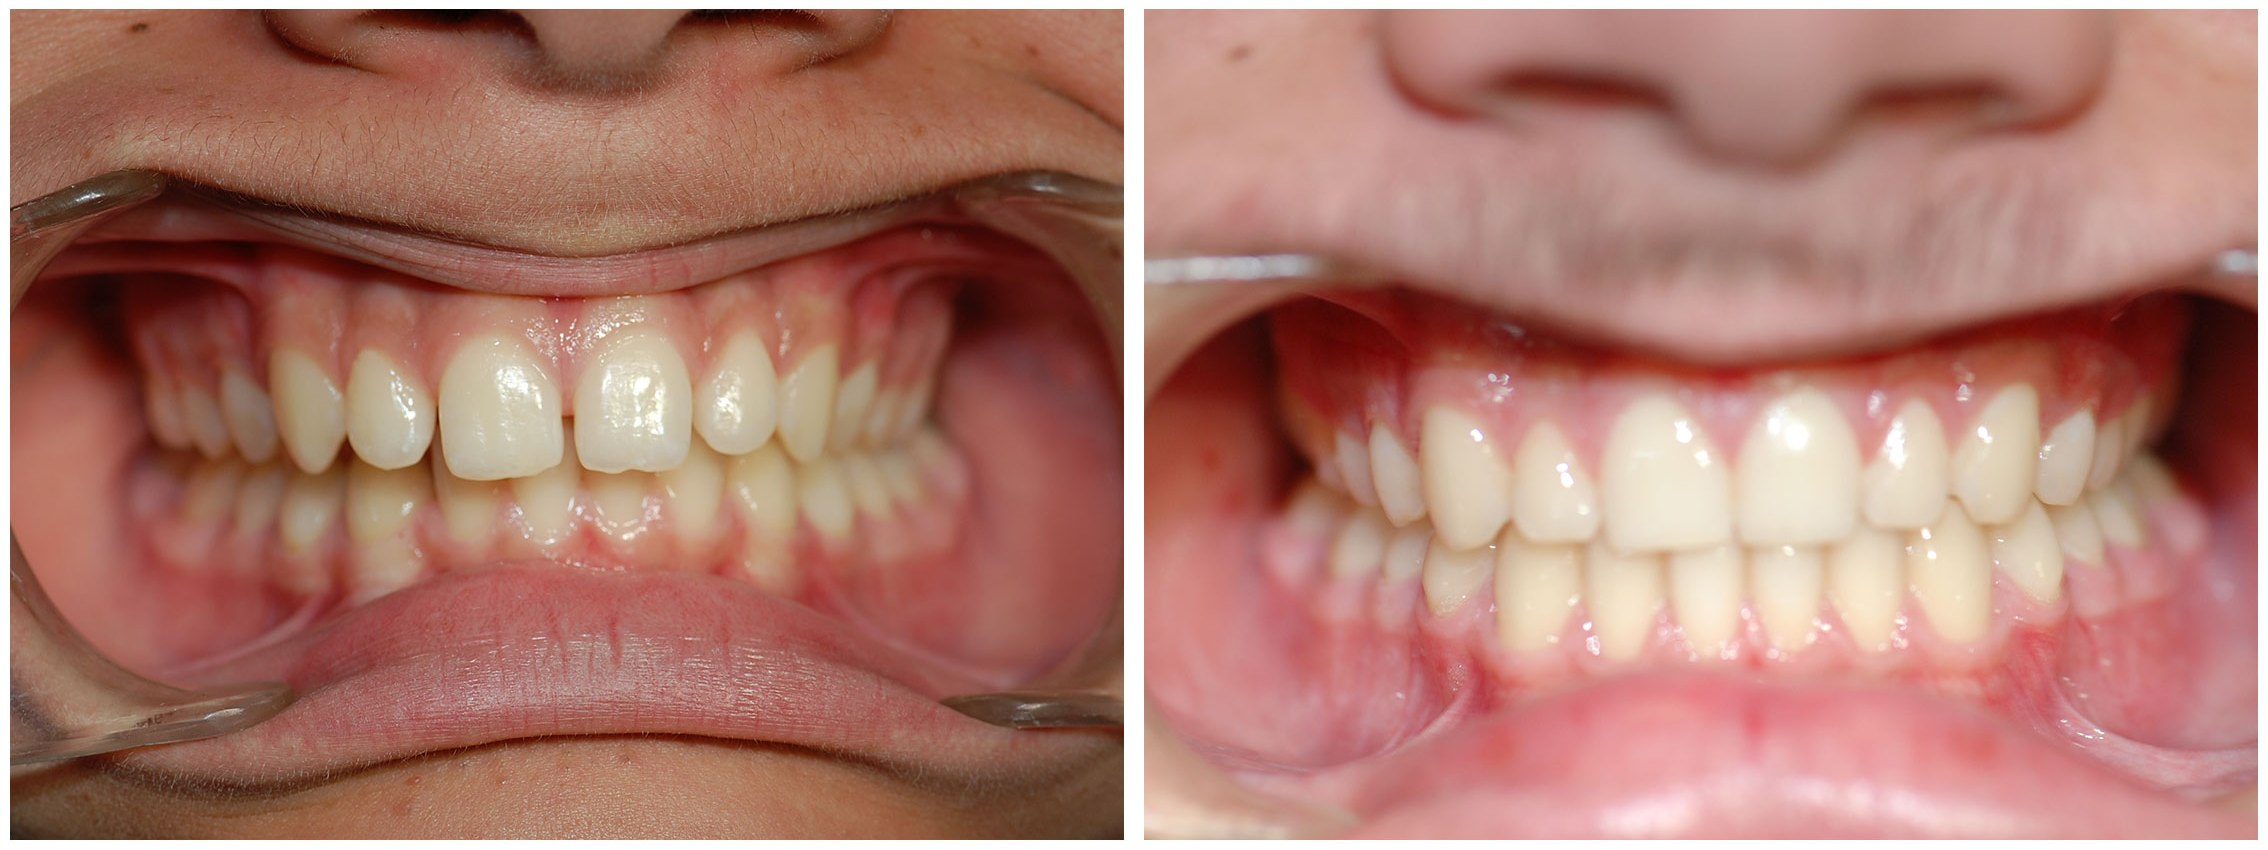 Pedodontist Dental Braces Treatment Before & After